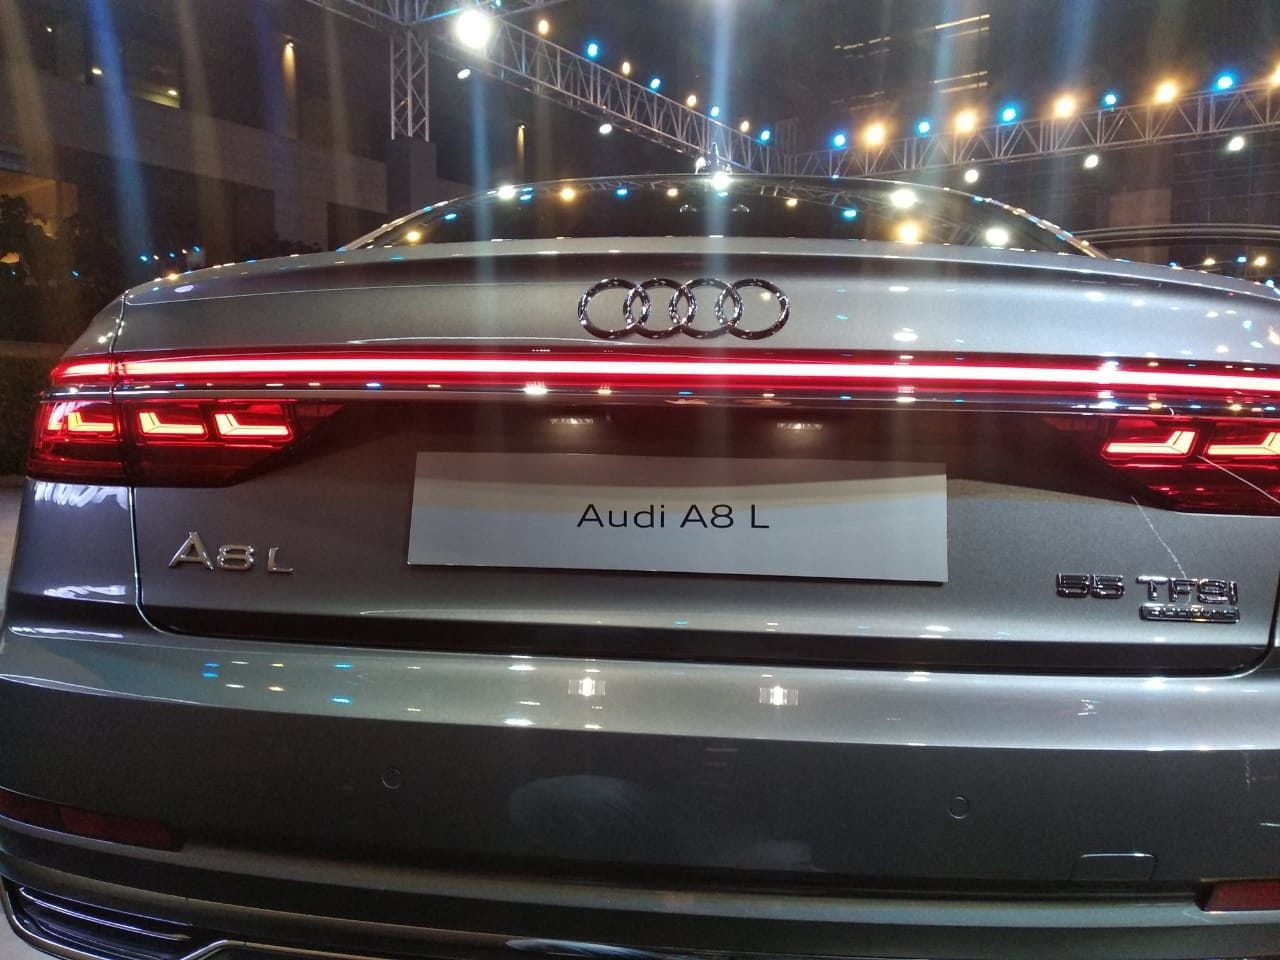 The sedan also comes with an air quality package that not only promises to clean the air inside the A8 L but also add climate-neutral fragrance.